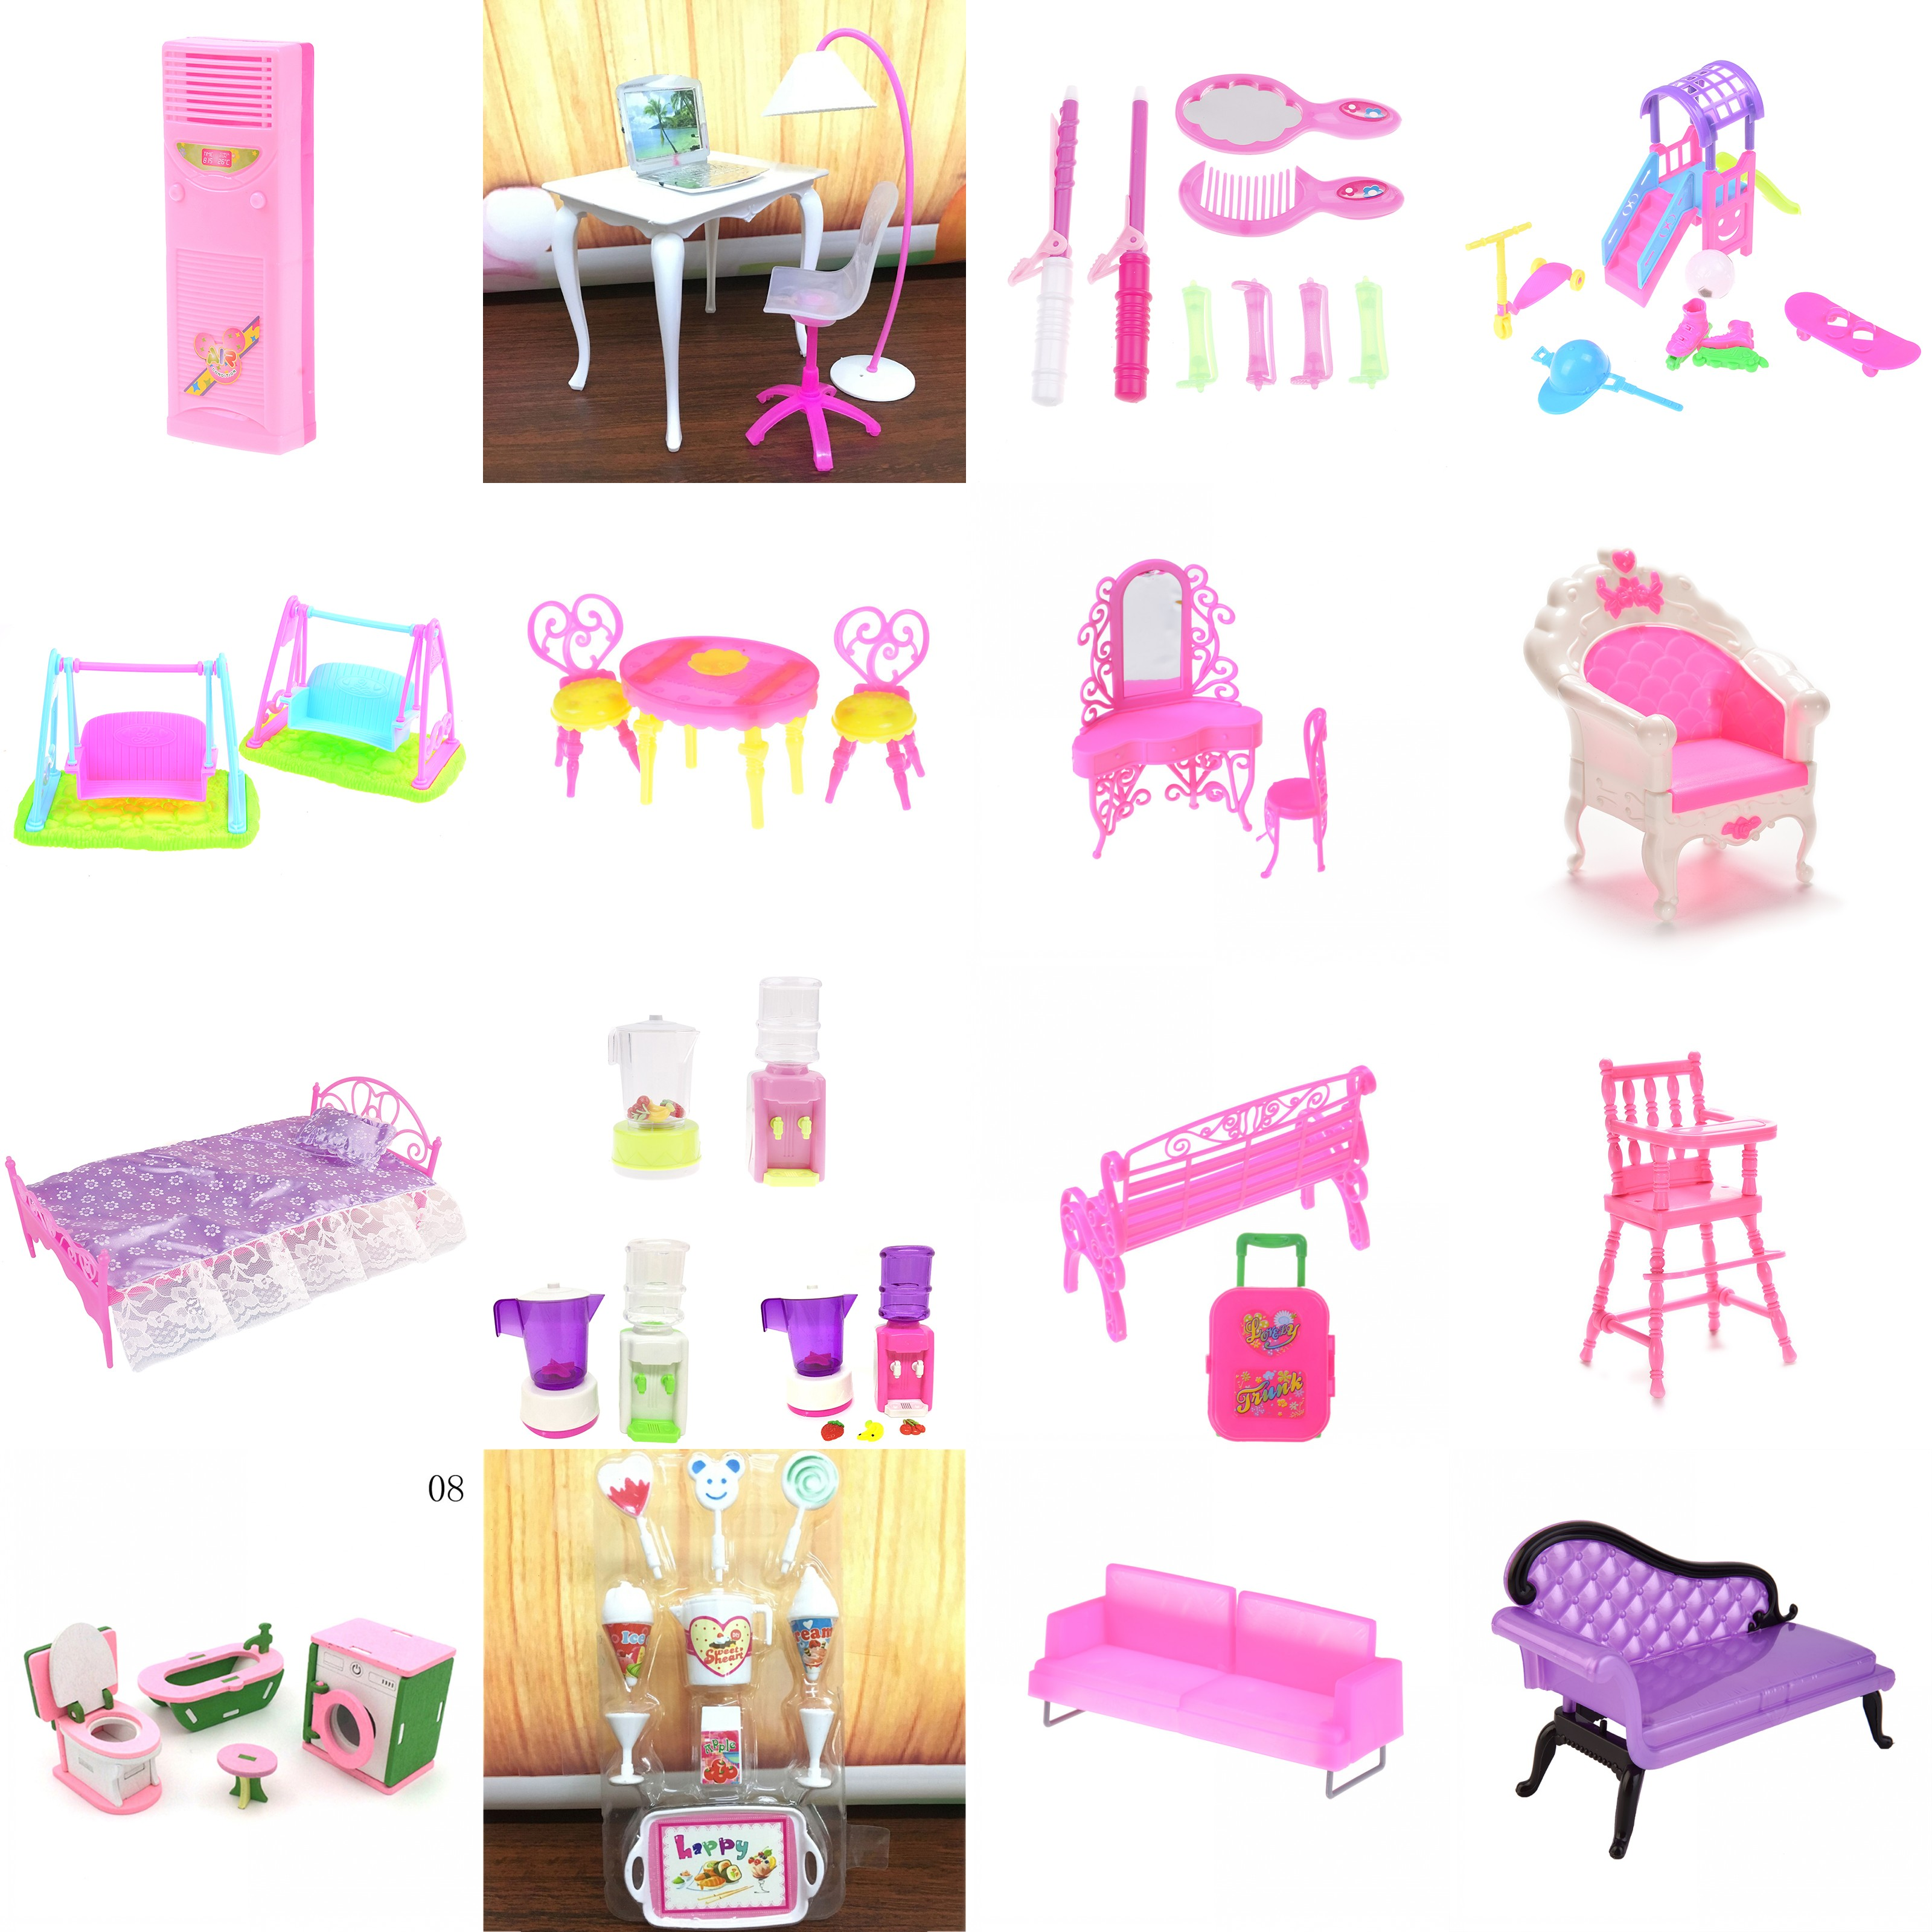 Beautiful Furniture Living Room Plastic White Wardrobe Closet Dollhouse Accessories Toy Plastic Wardrobe Dollhouse 13*5*21cm Dolls Accessories Toys & Hobbies